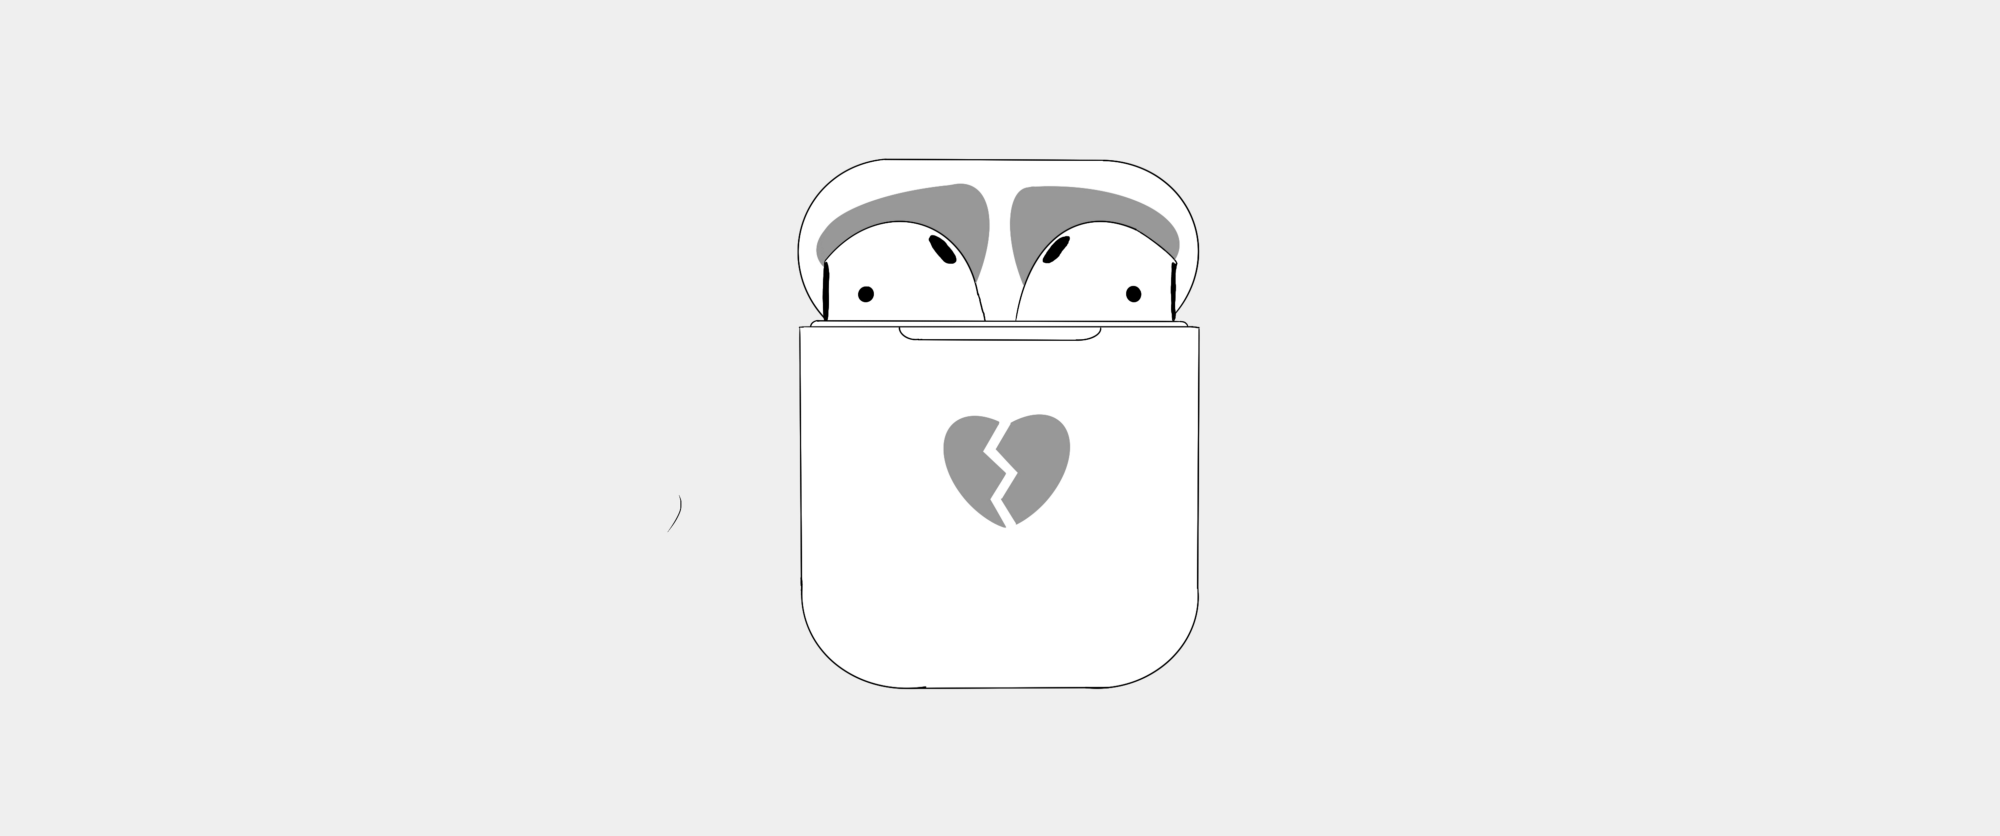 Illustration of AiPods in case with a broken heart emoji